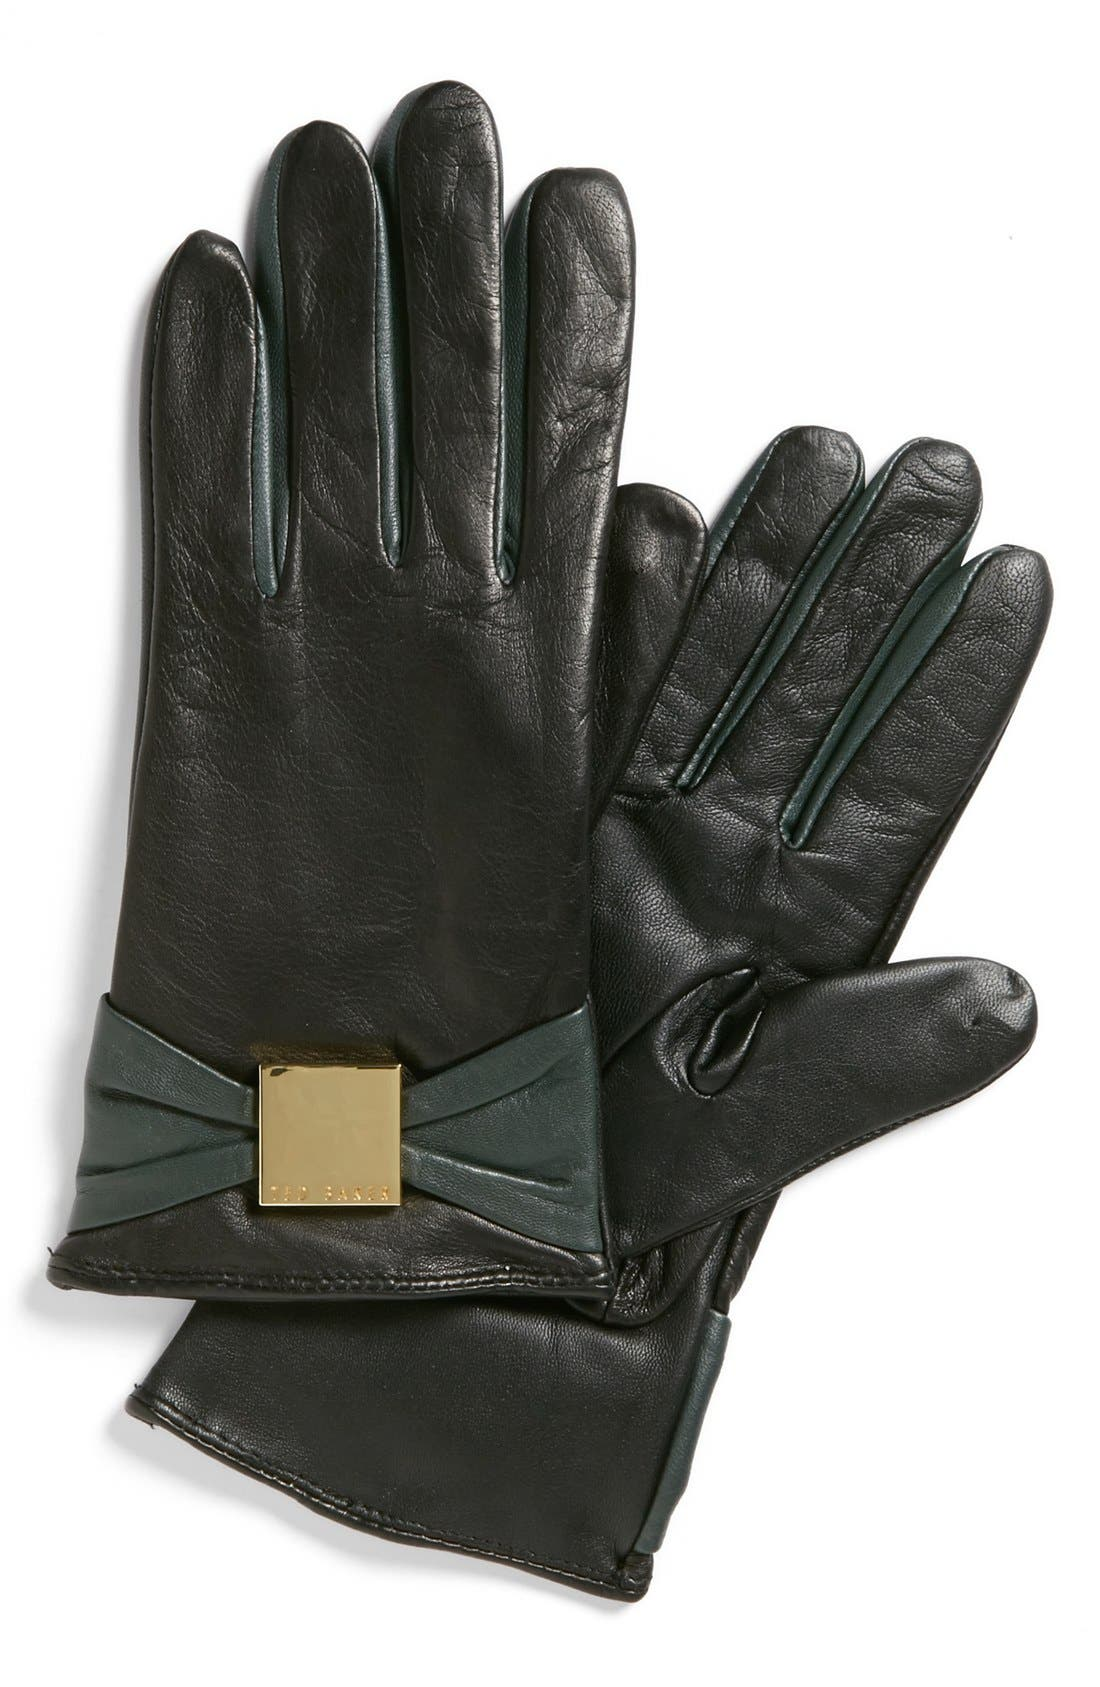 Main Image - Ted Baker London 'Bow' Leather Tech Gloves